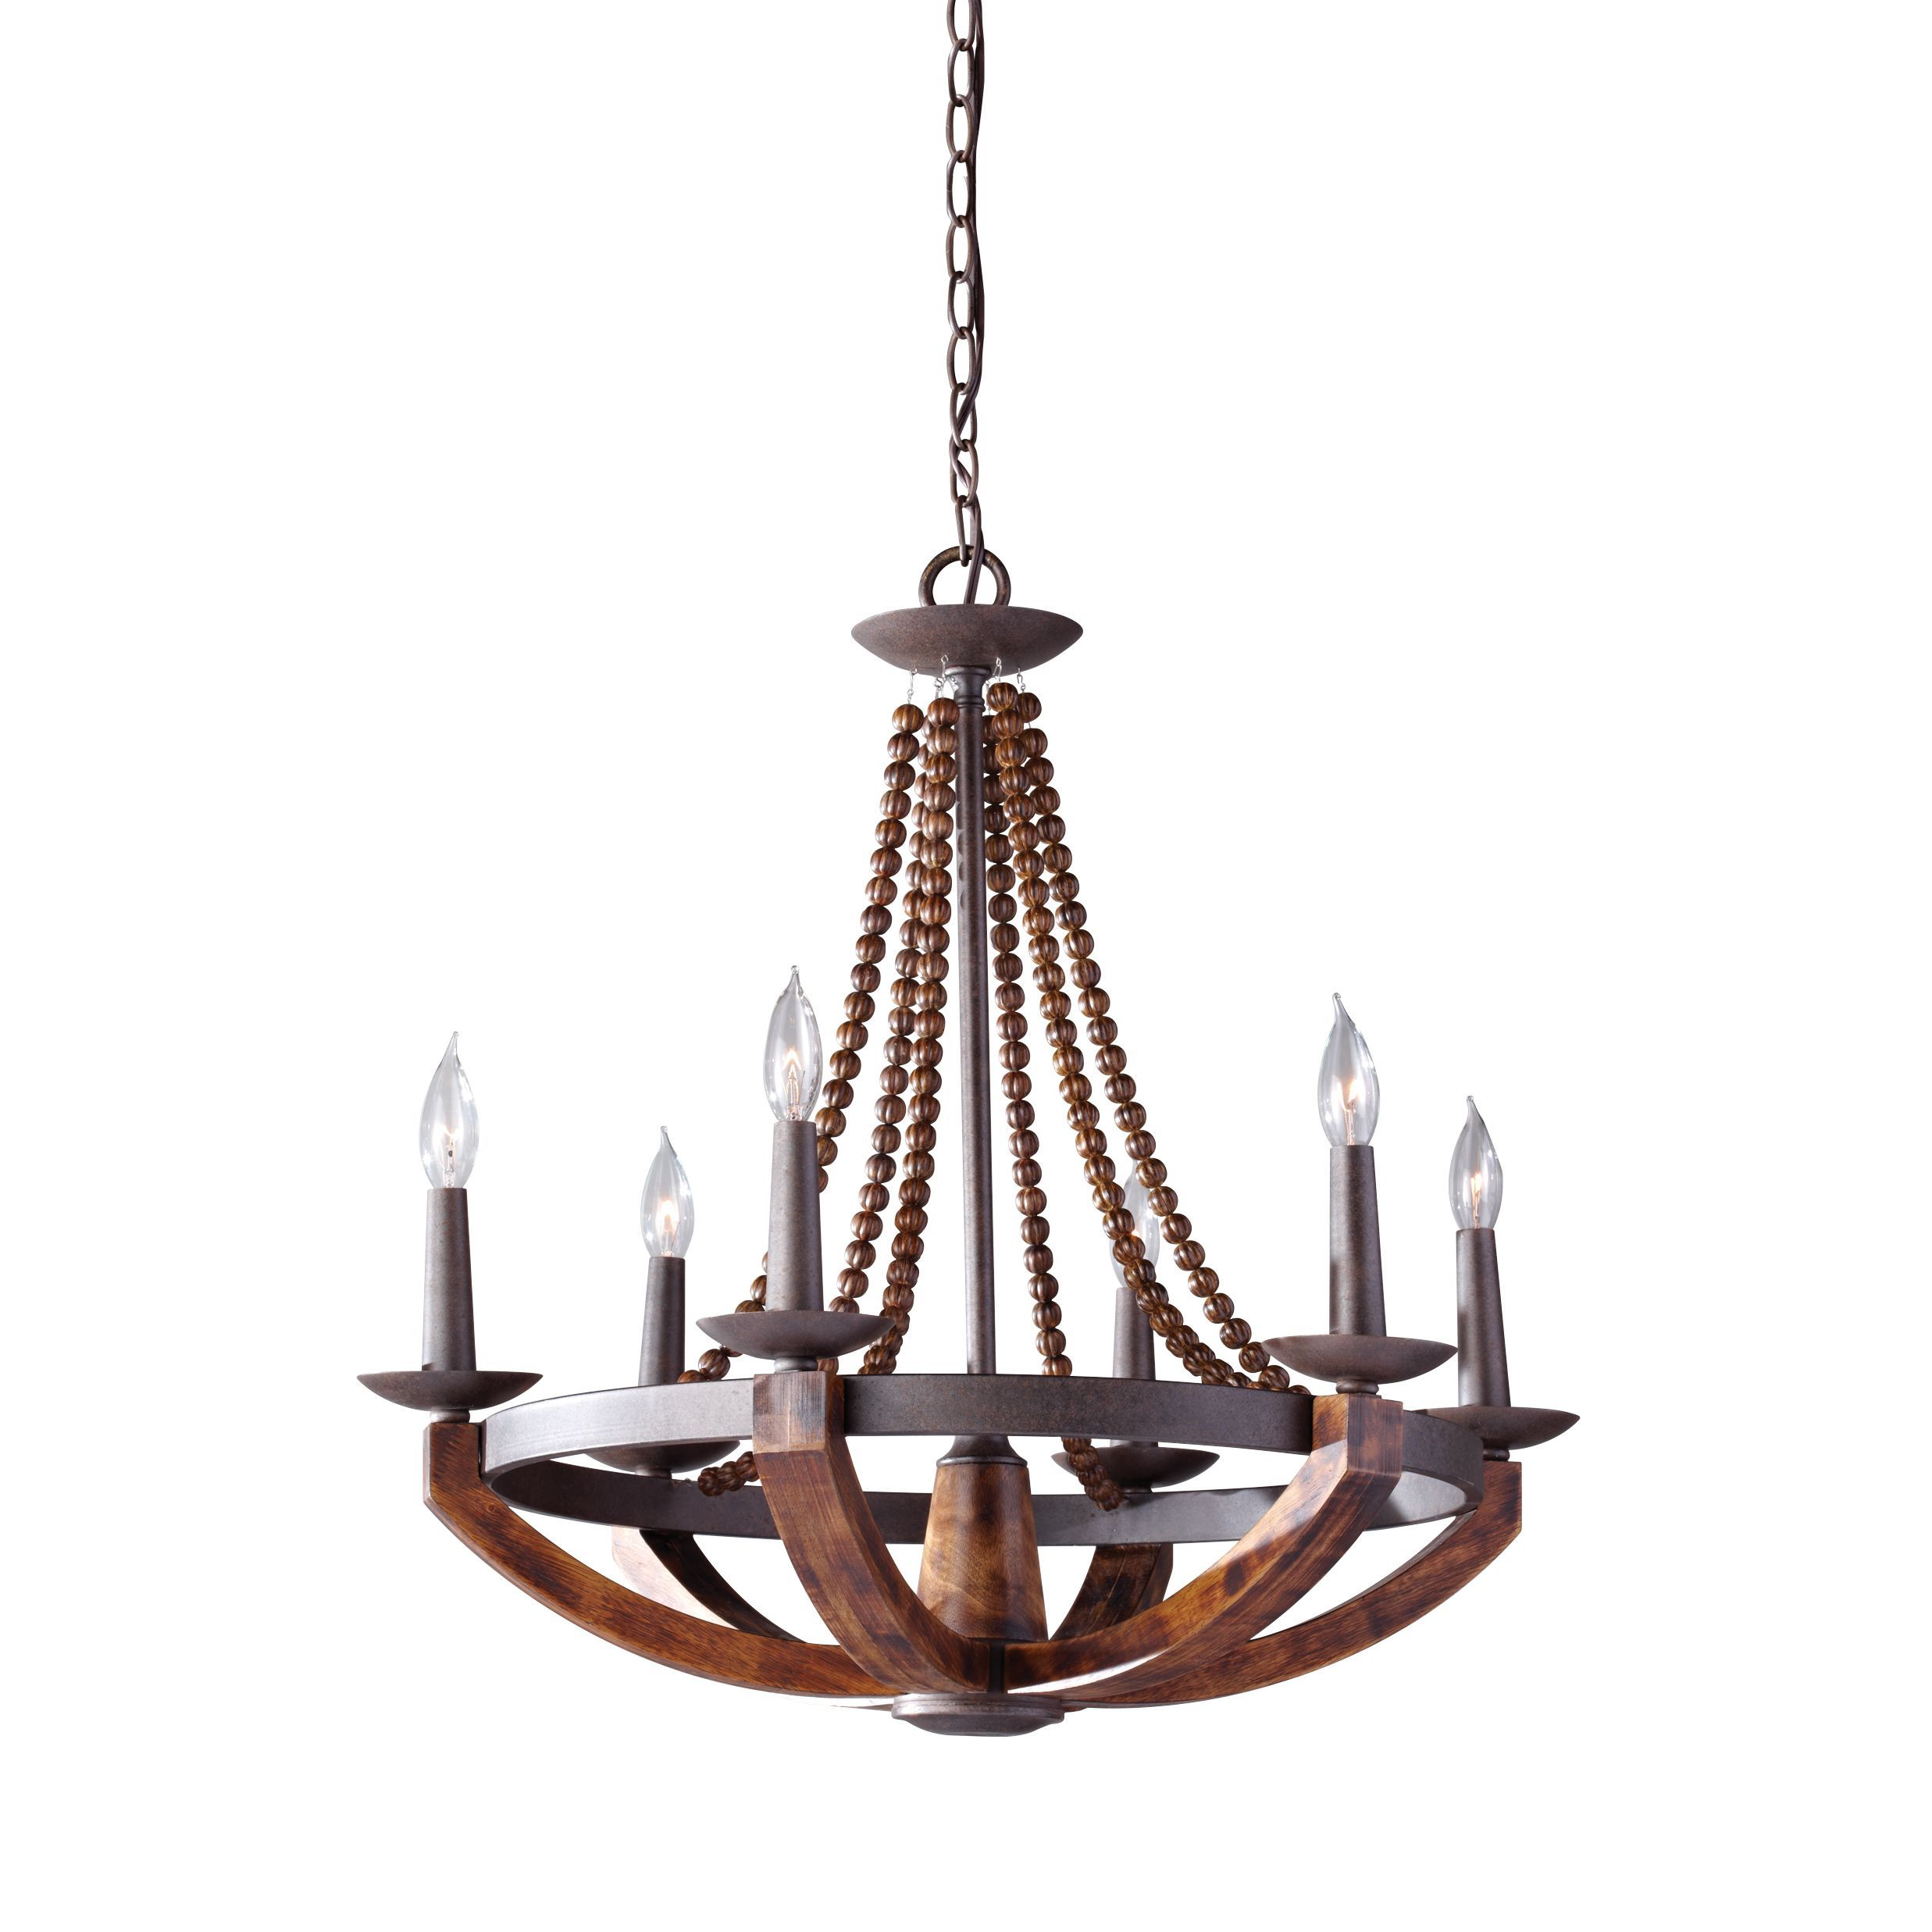 Feiss adan 6 light rustic iron burnished wood chandelier 6 feiss adan 6 light rustic iron burnished wood chandelier 6 light adan arubaitofo Images